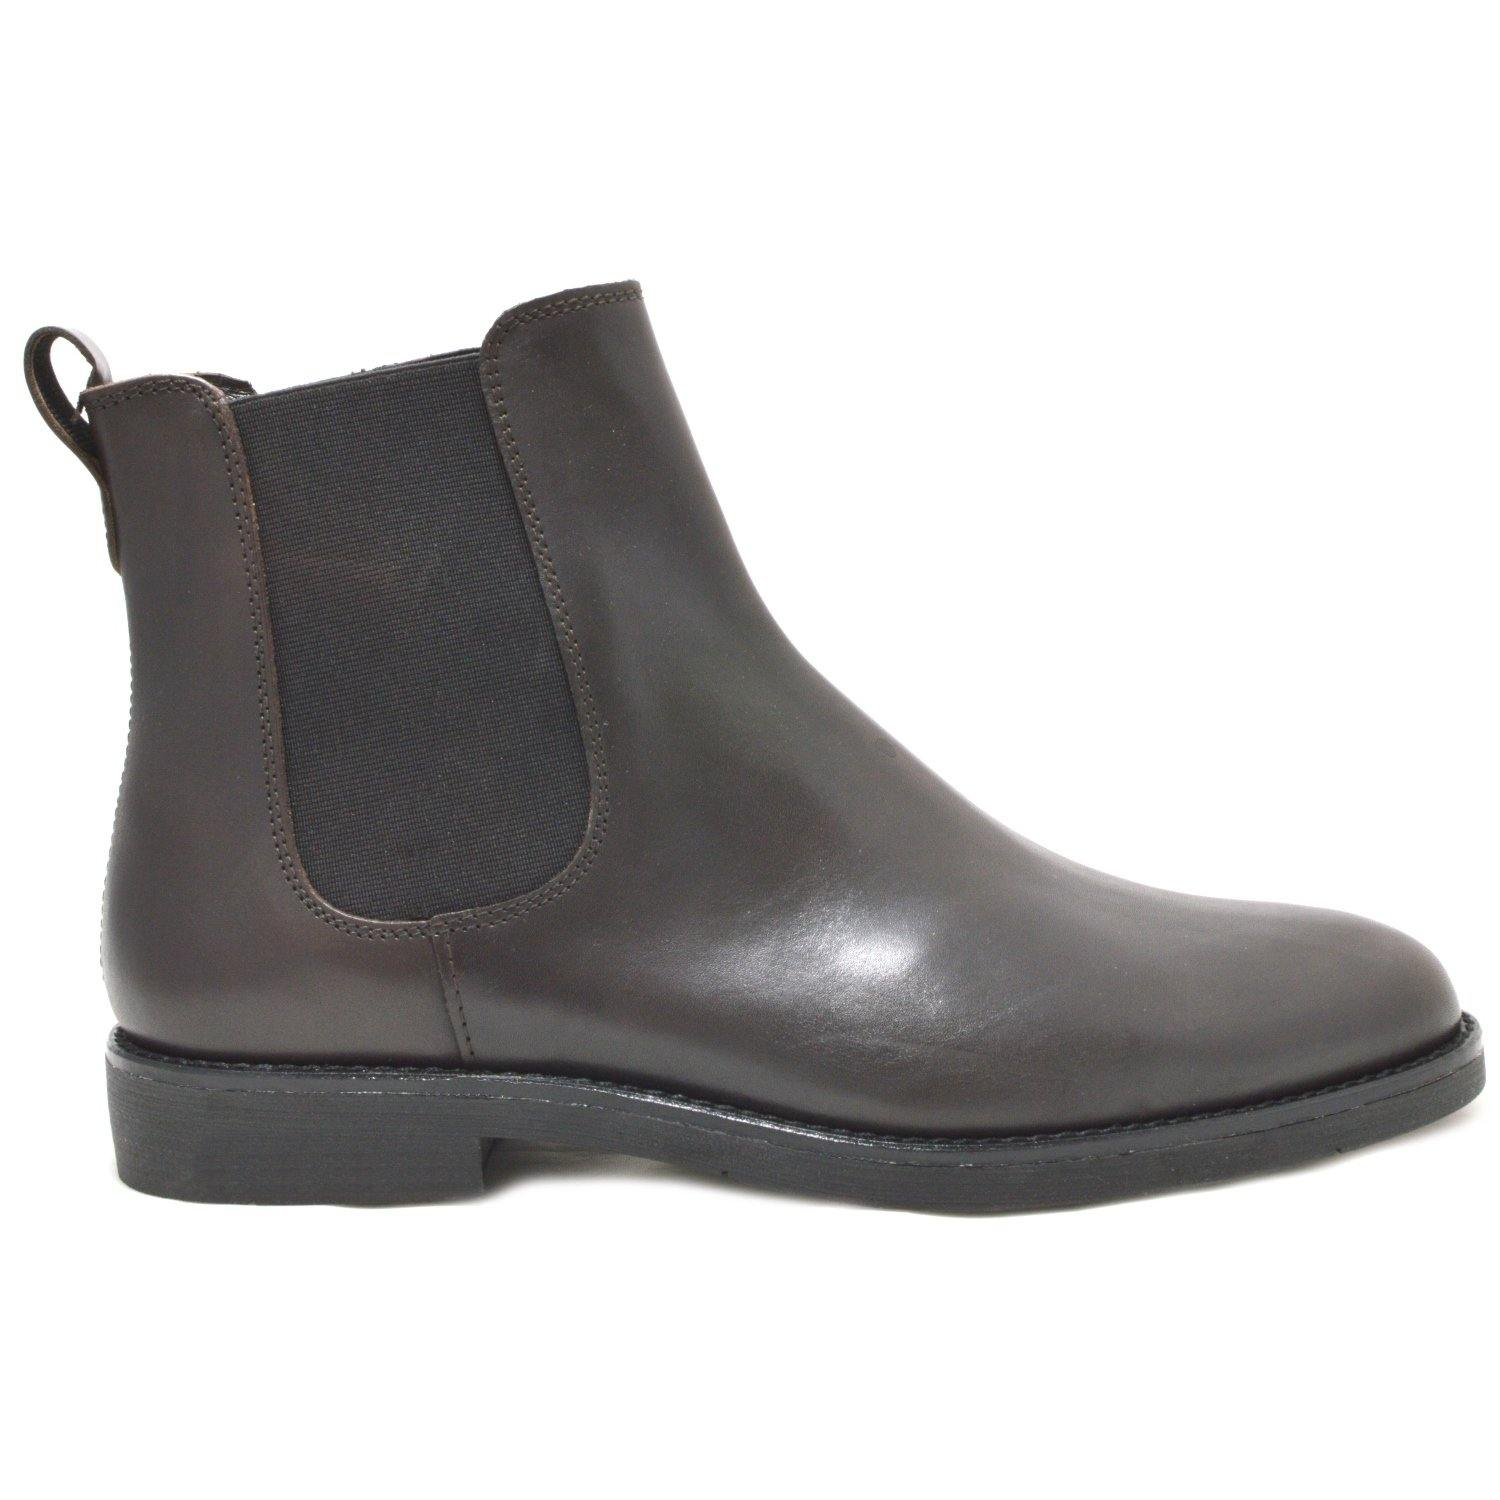 Dark Siena, Italian Calfskin Leather Chelsea Boots with a black rubber sole